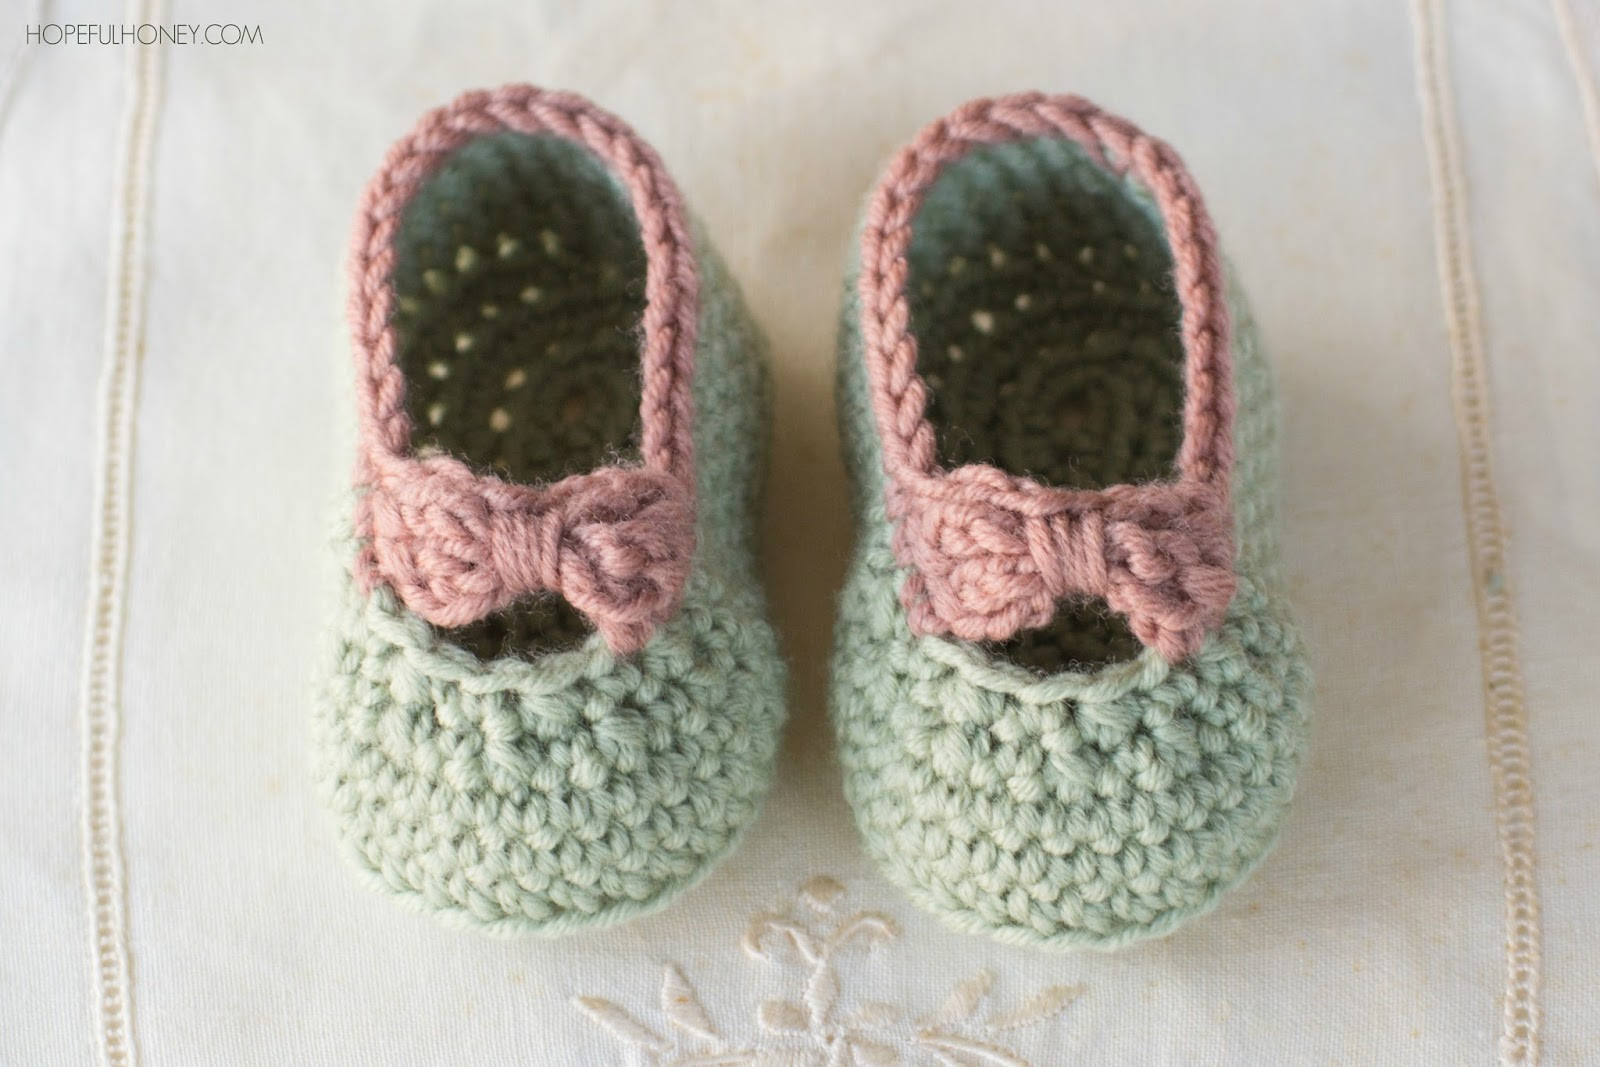 Lovely Get Better Than Best Baby Booties Crochet Pattern Crochet Baby socks Of Beautiful Crochet Baby Booties Patterns for Sweet Little Feet Crochet Baby socks